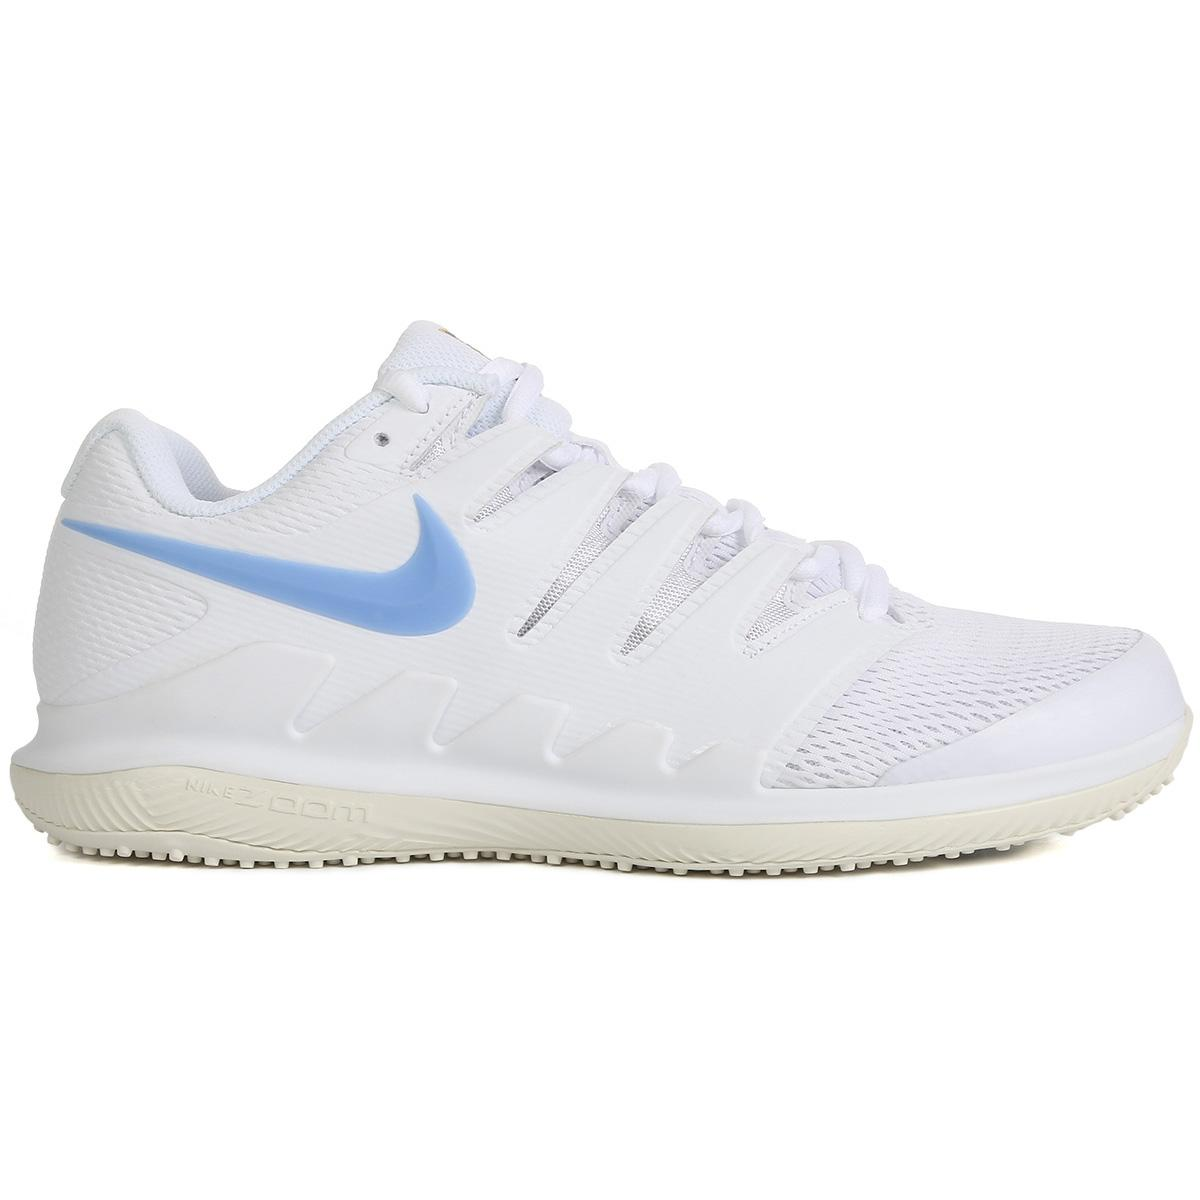 fe7bdfee2006 Nike Mens Air Zoom Vapor X Grass Court Tennis Shoes - White - Tennisnuts.com